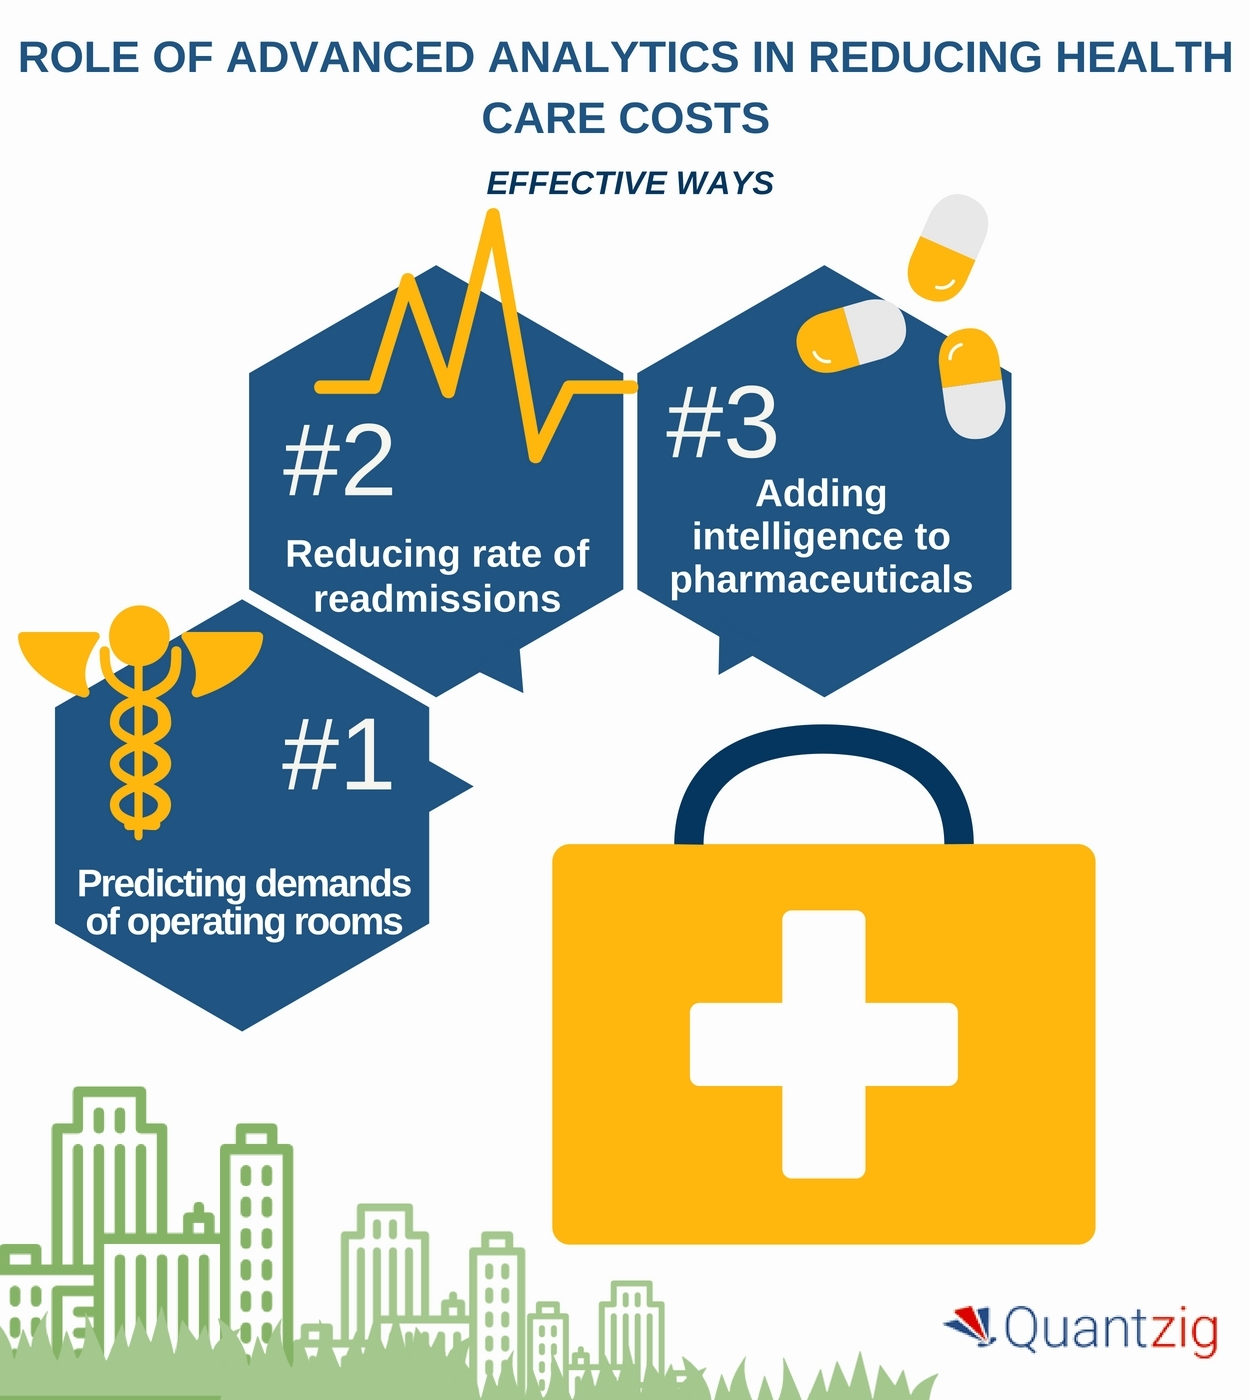 Tips To Reduce Healthcare Costs With Advanced Analytics